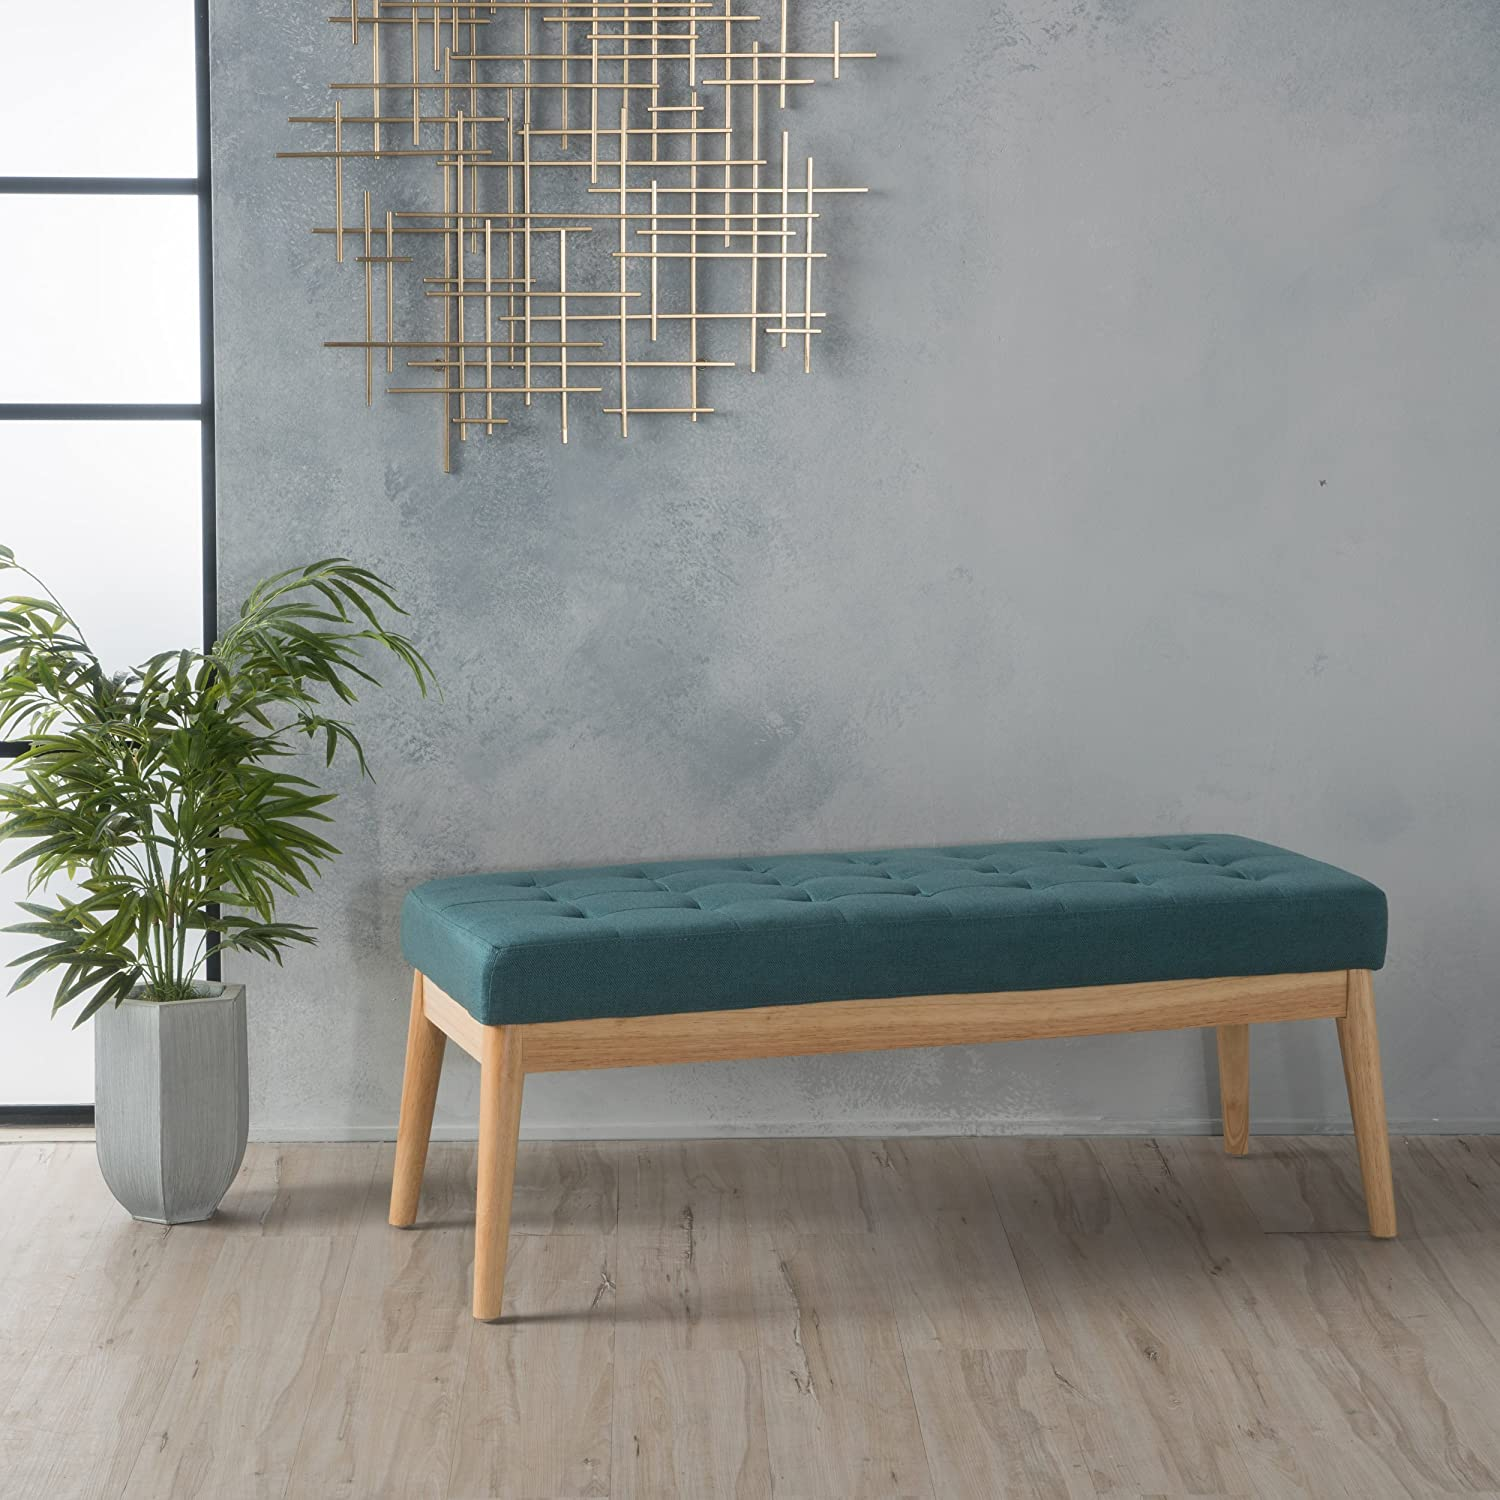 Prime Christopher Knight Home Living Anglo Deep Teal Fabric Bench Dark Gmtry Best Dining Table And Chair Ideas Images Gmtryco